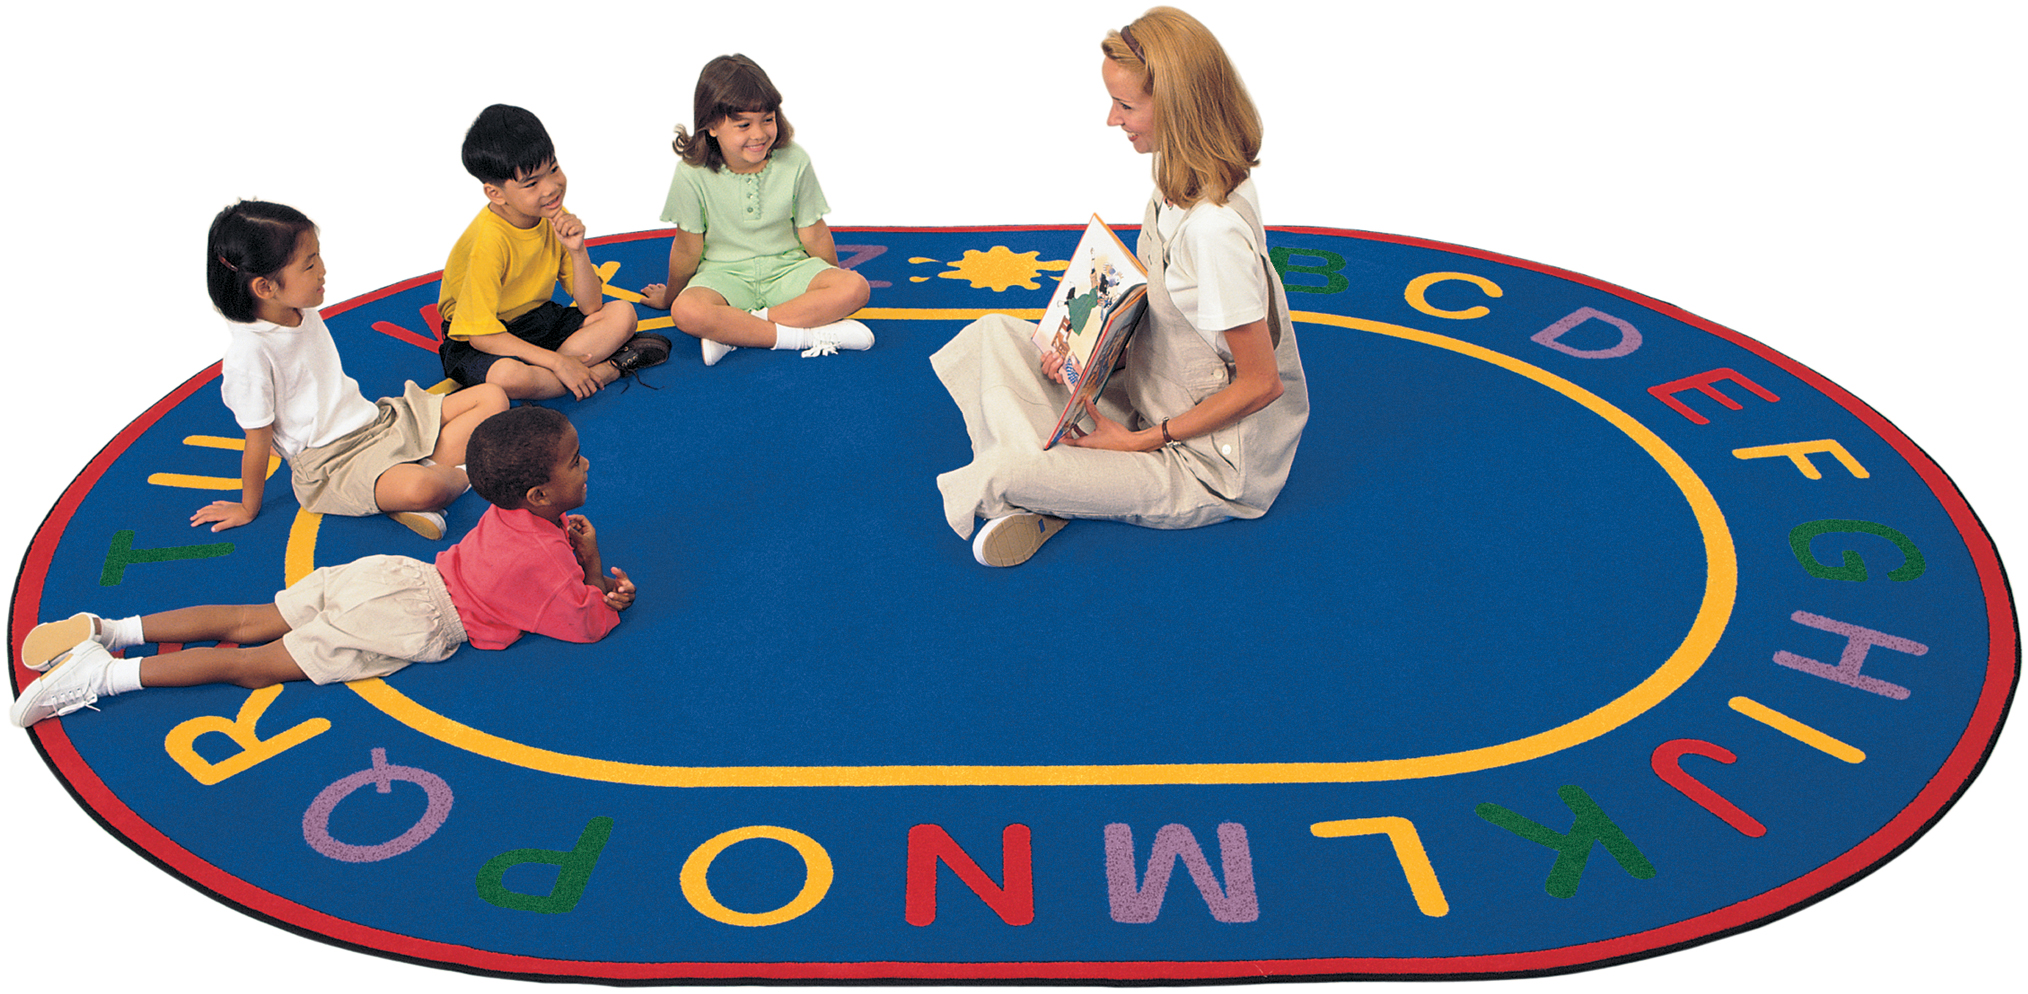 rug to we back classroom basics management corps the img series carpet school kindergarten